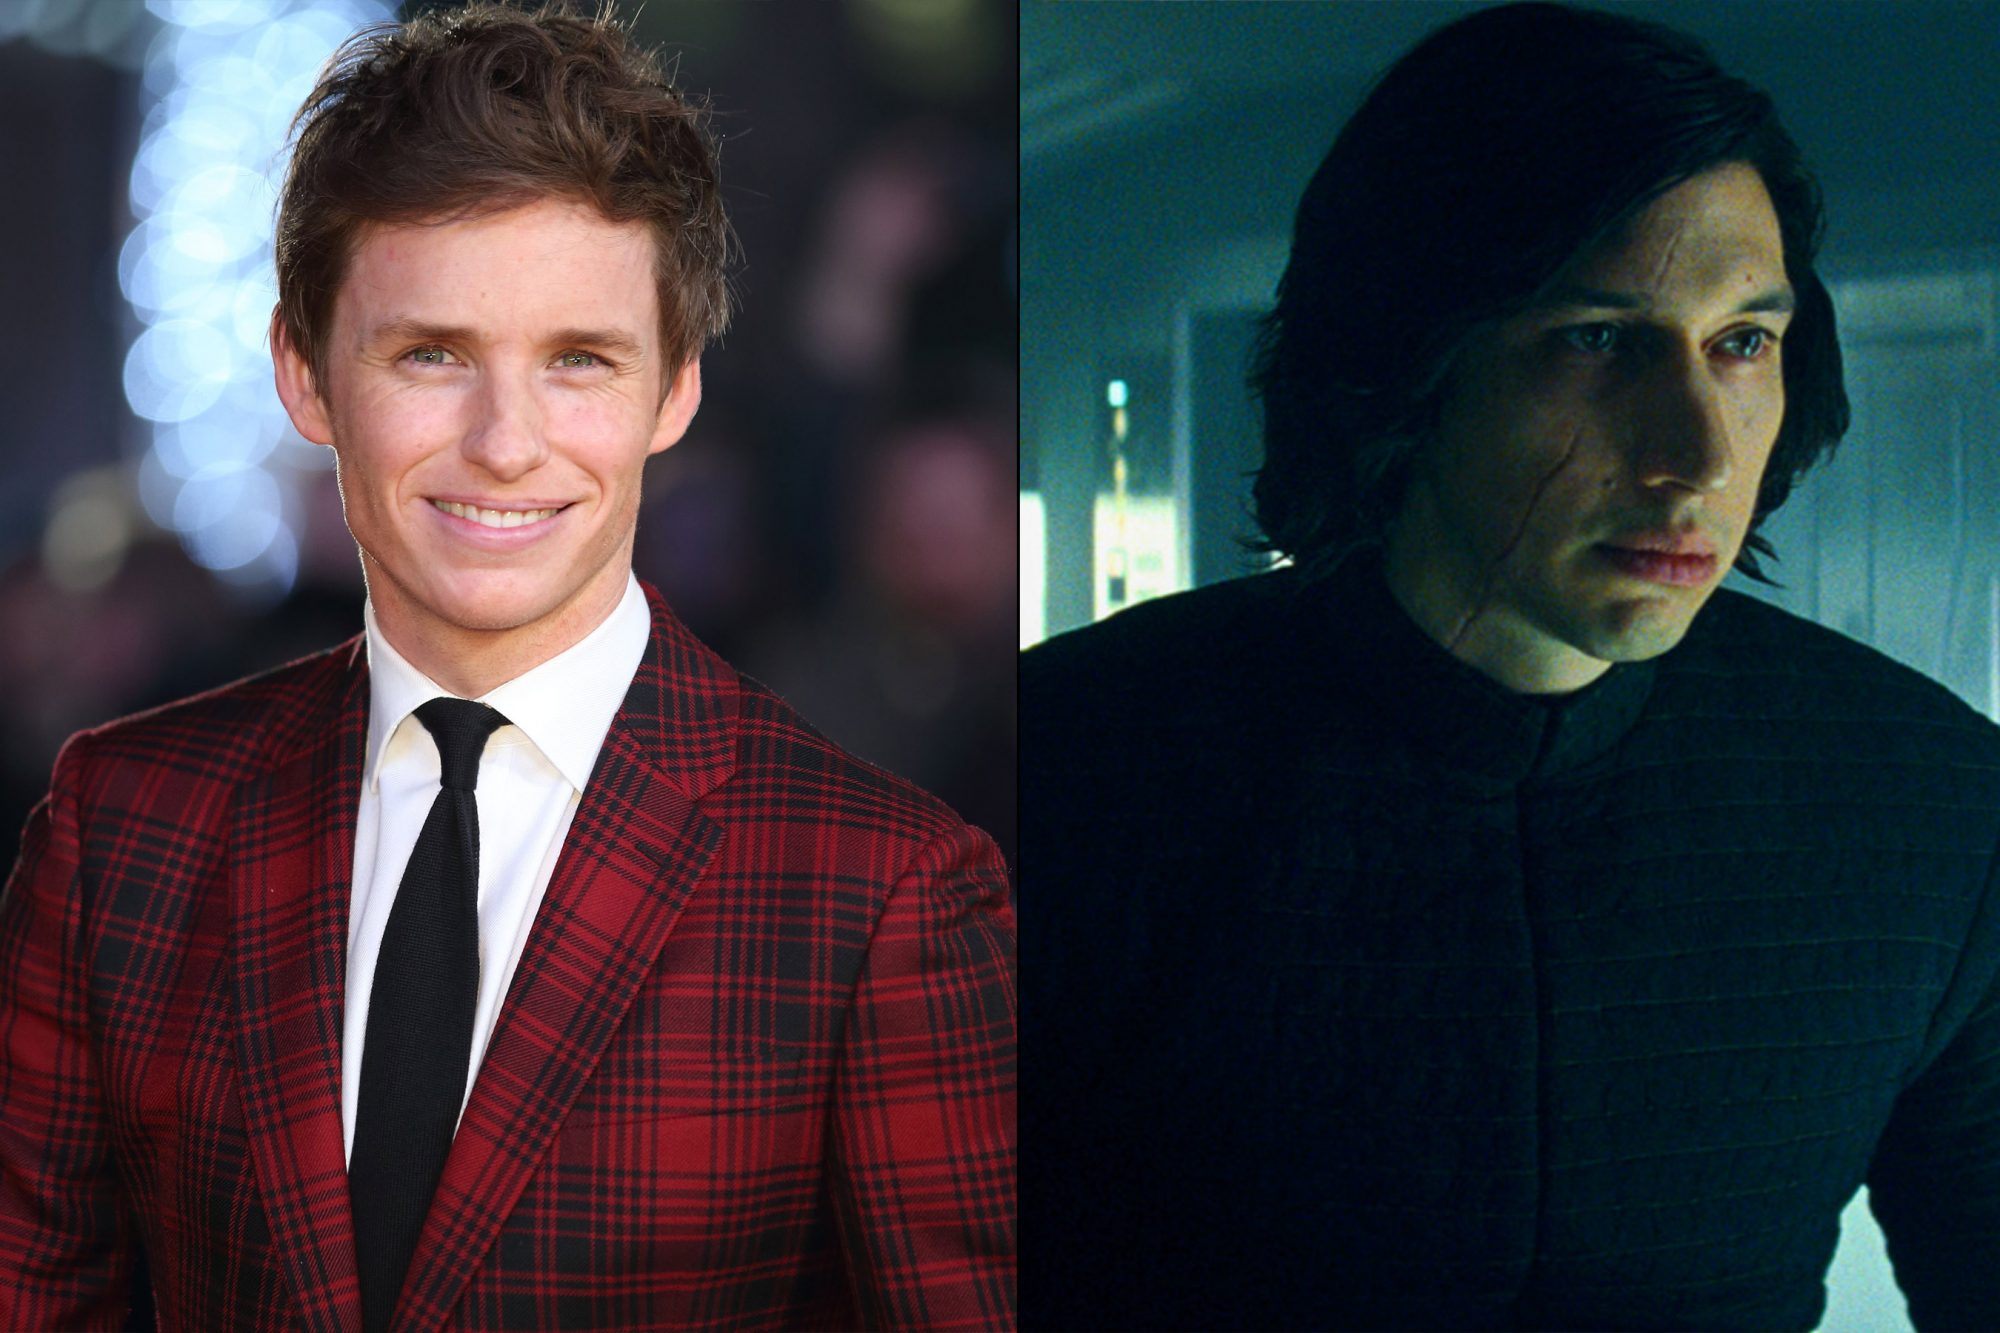 Eddie Redmayne in Star Wars